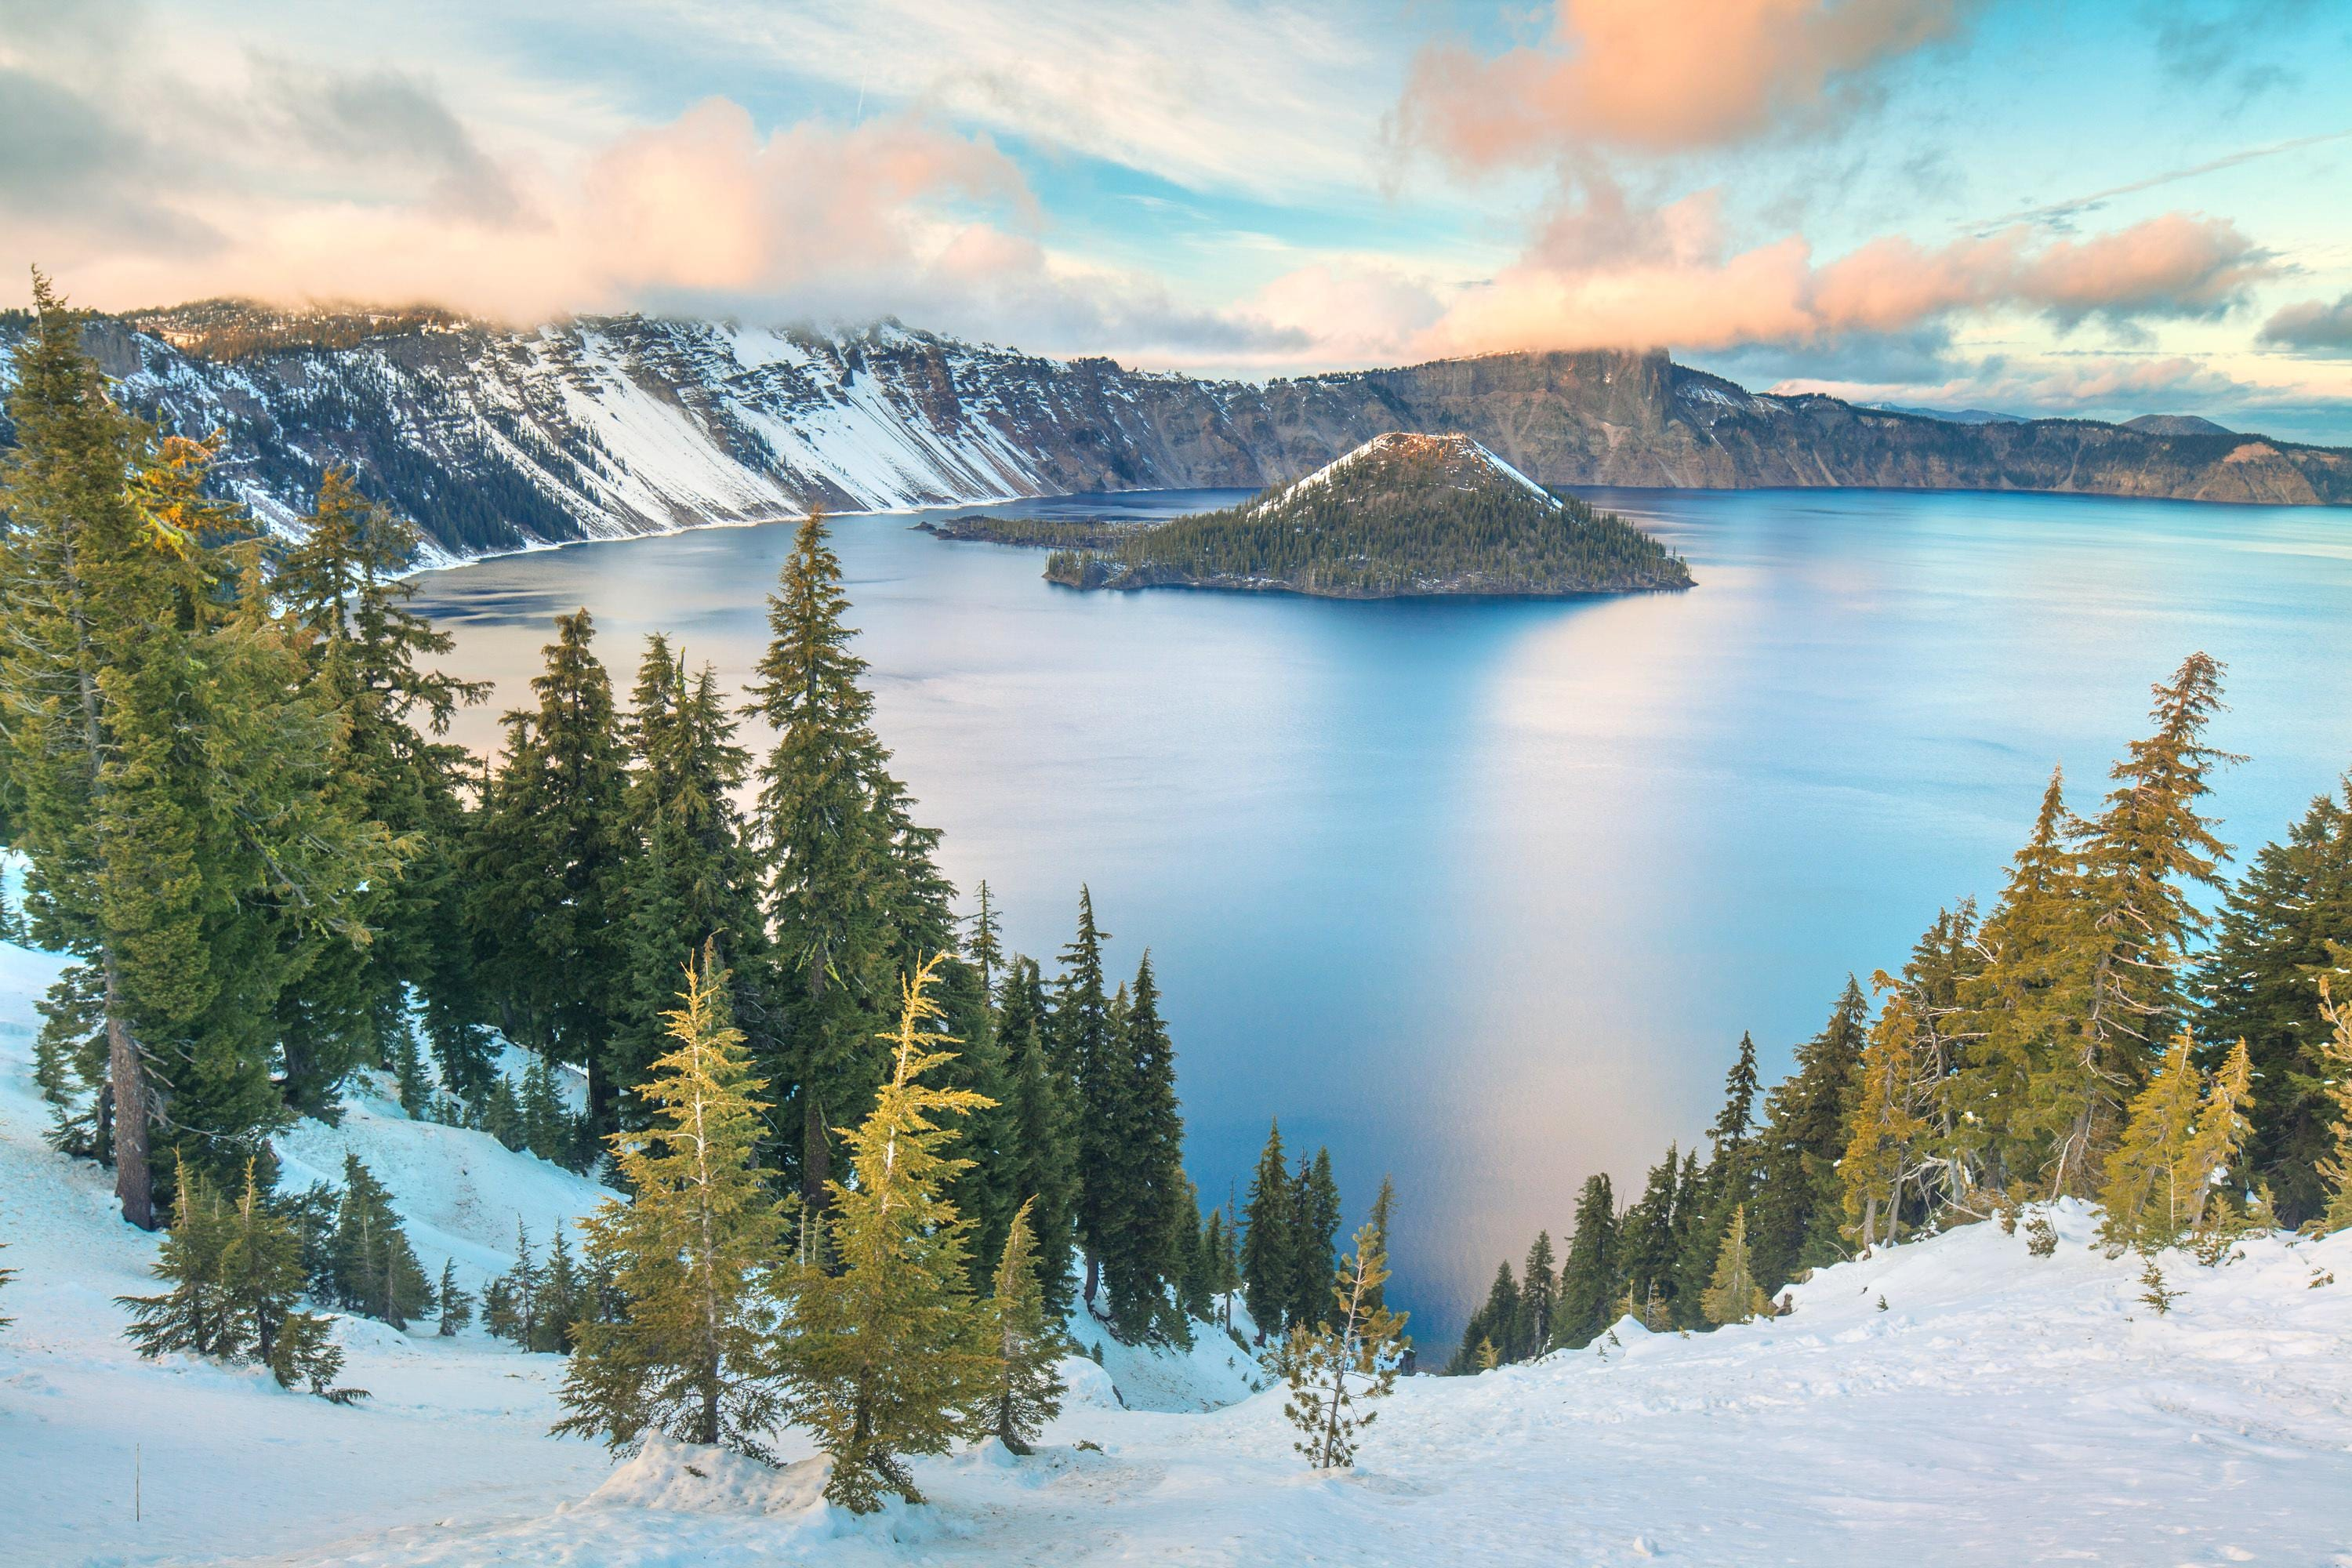 Crater National lake Park